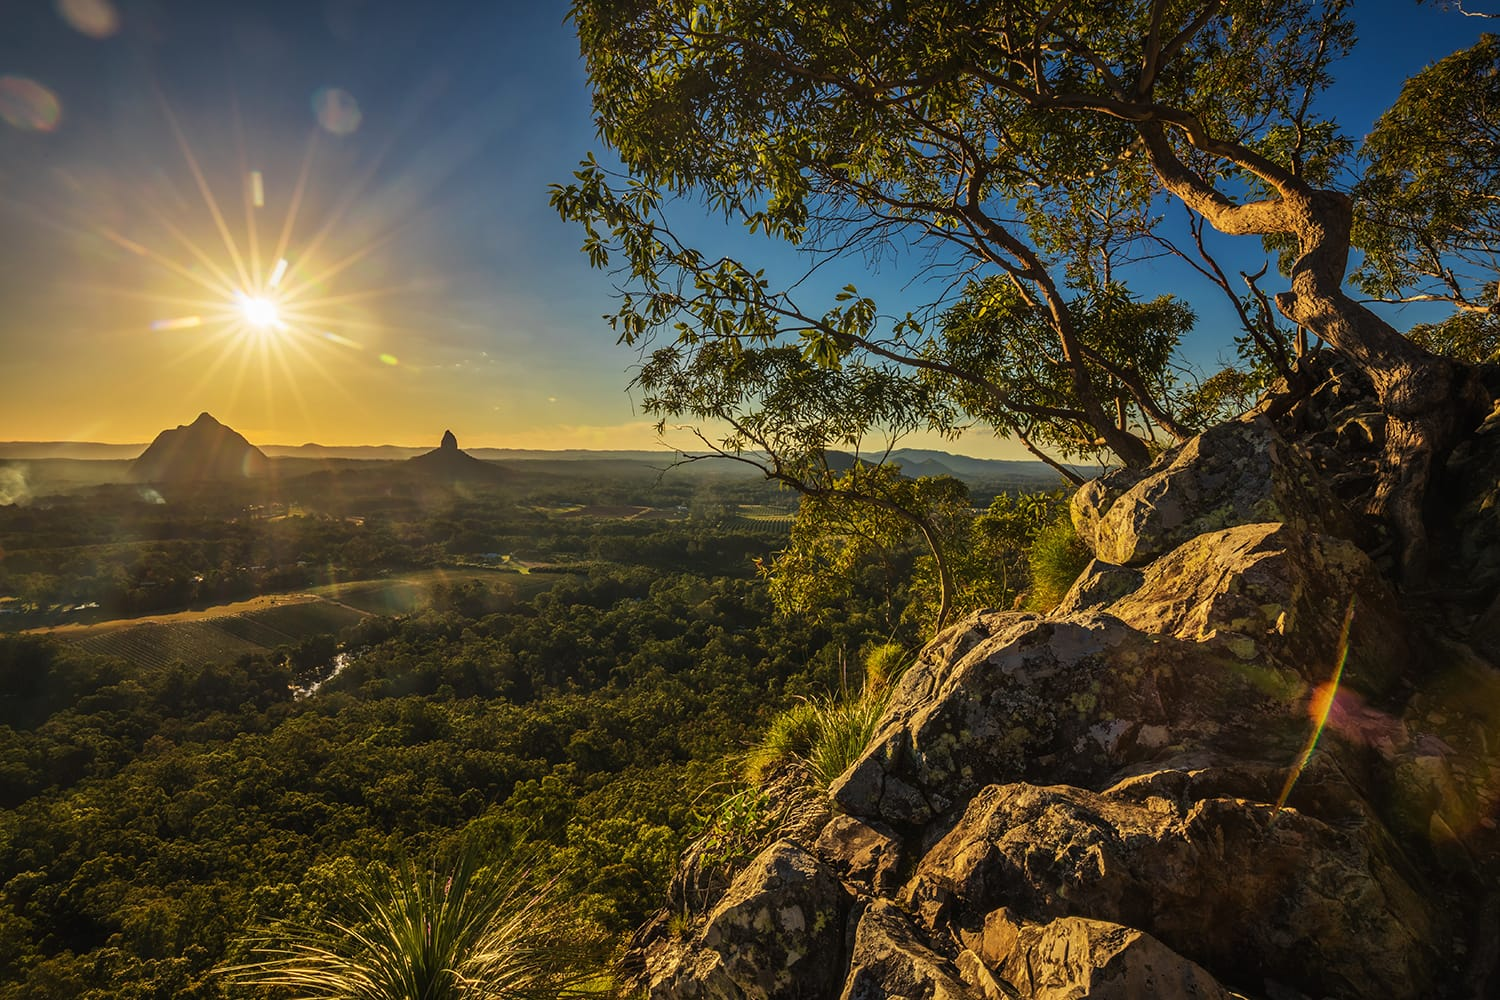 Sunset seen from Mount Tibrogargan, Glass House Mountains, Sunshine Coast, Queensland, Australia